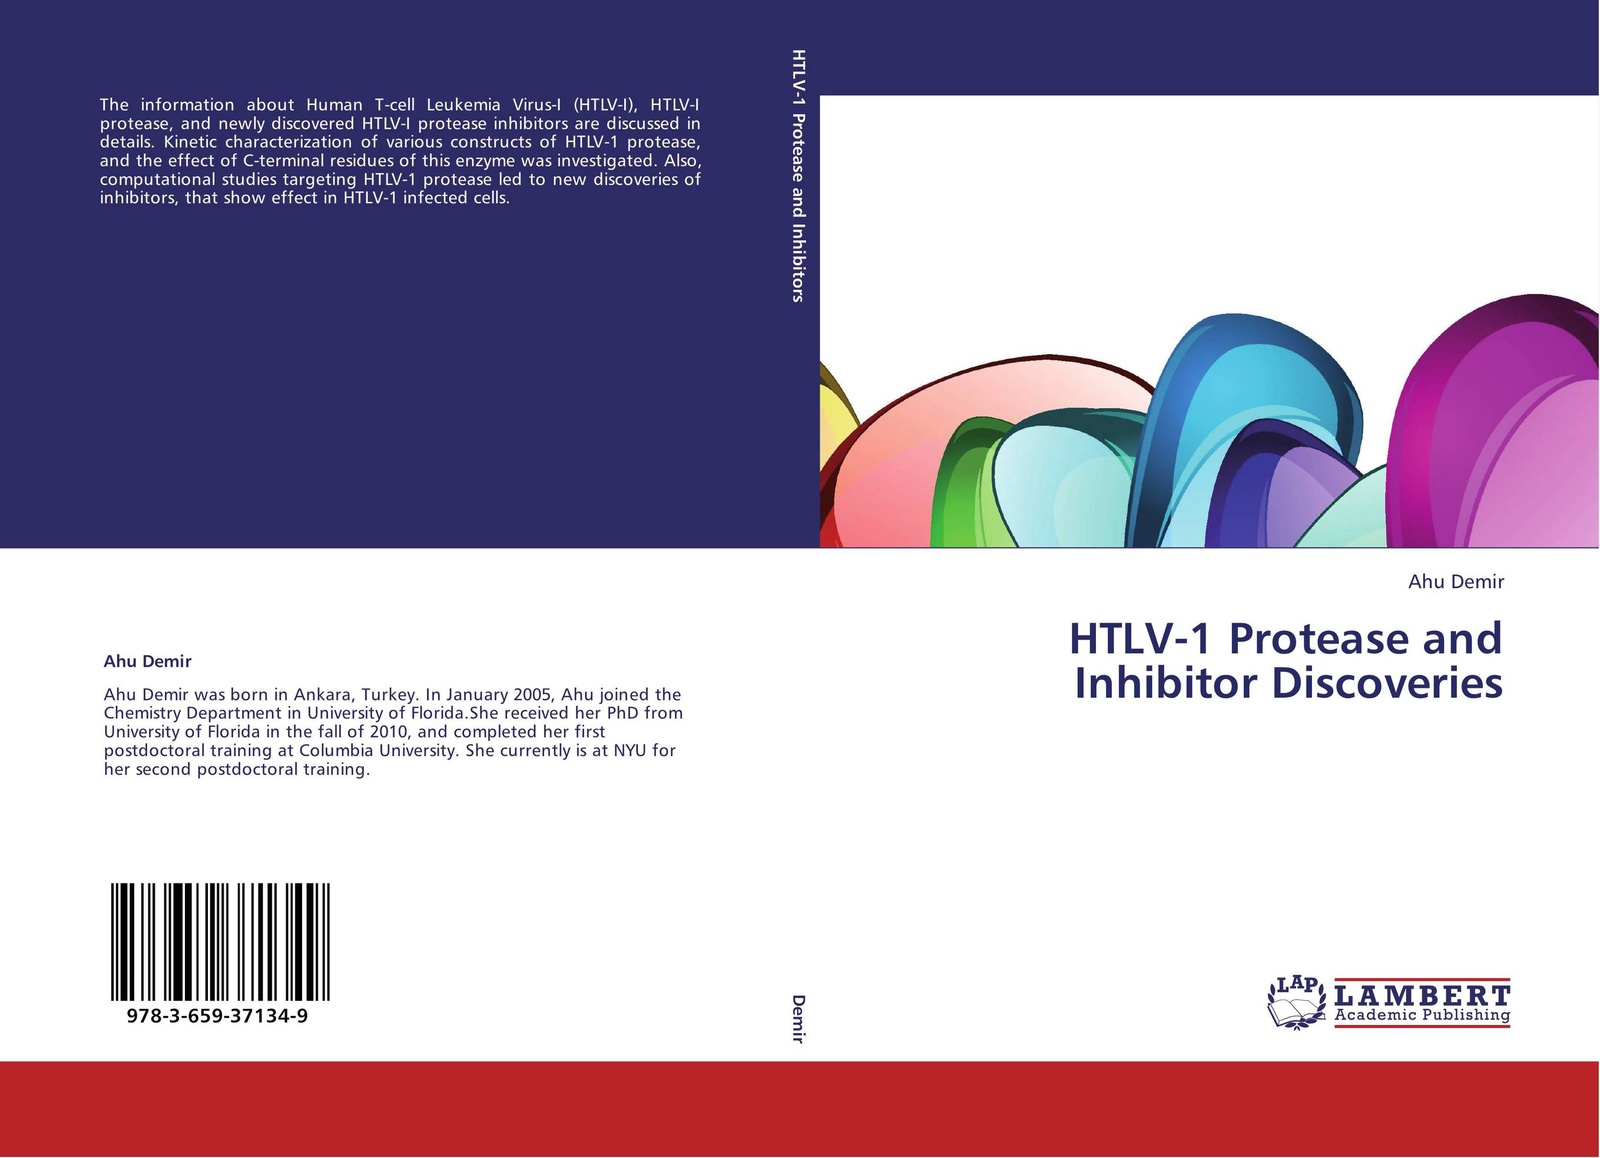 Ahu Demir HTLV-1 Protease and Inhibitor Discoveries fenerbahce demir insaat buyukcekmece